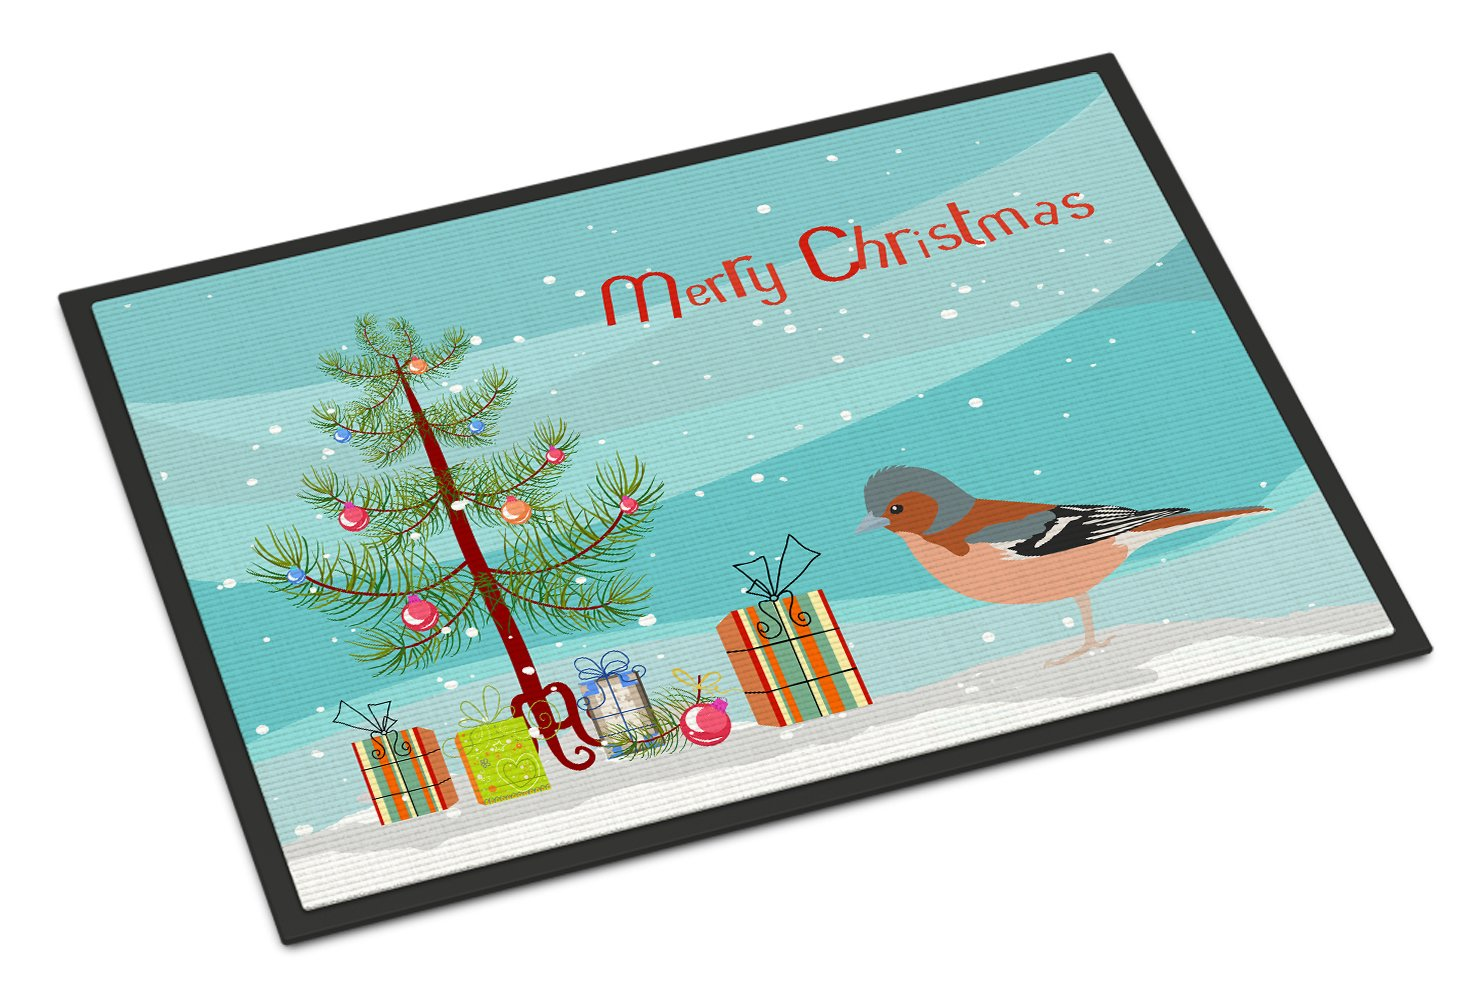 Finch Merry Christmas Indoor or Outdoor Mat 24x36 CK4488JMAT by Caroline's Treasures